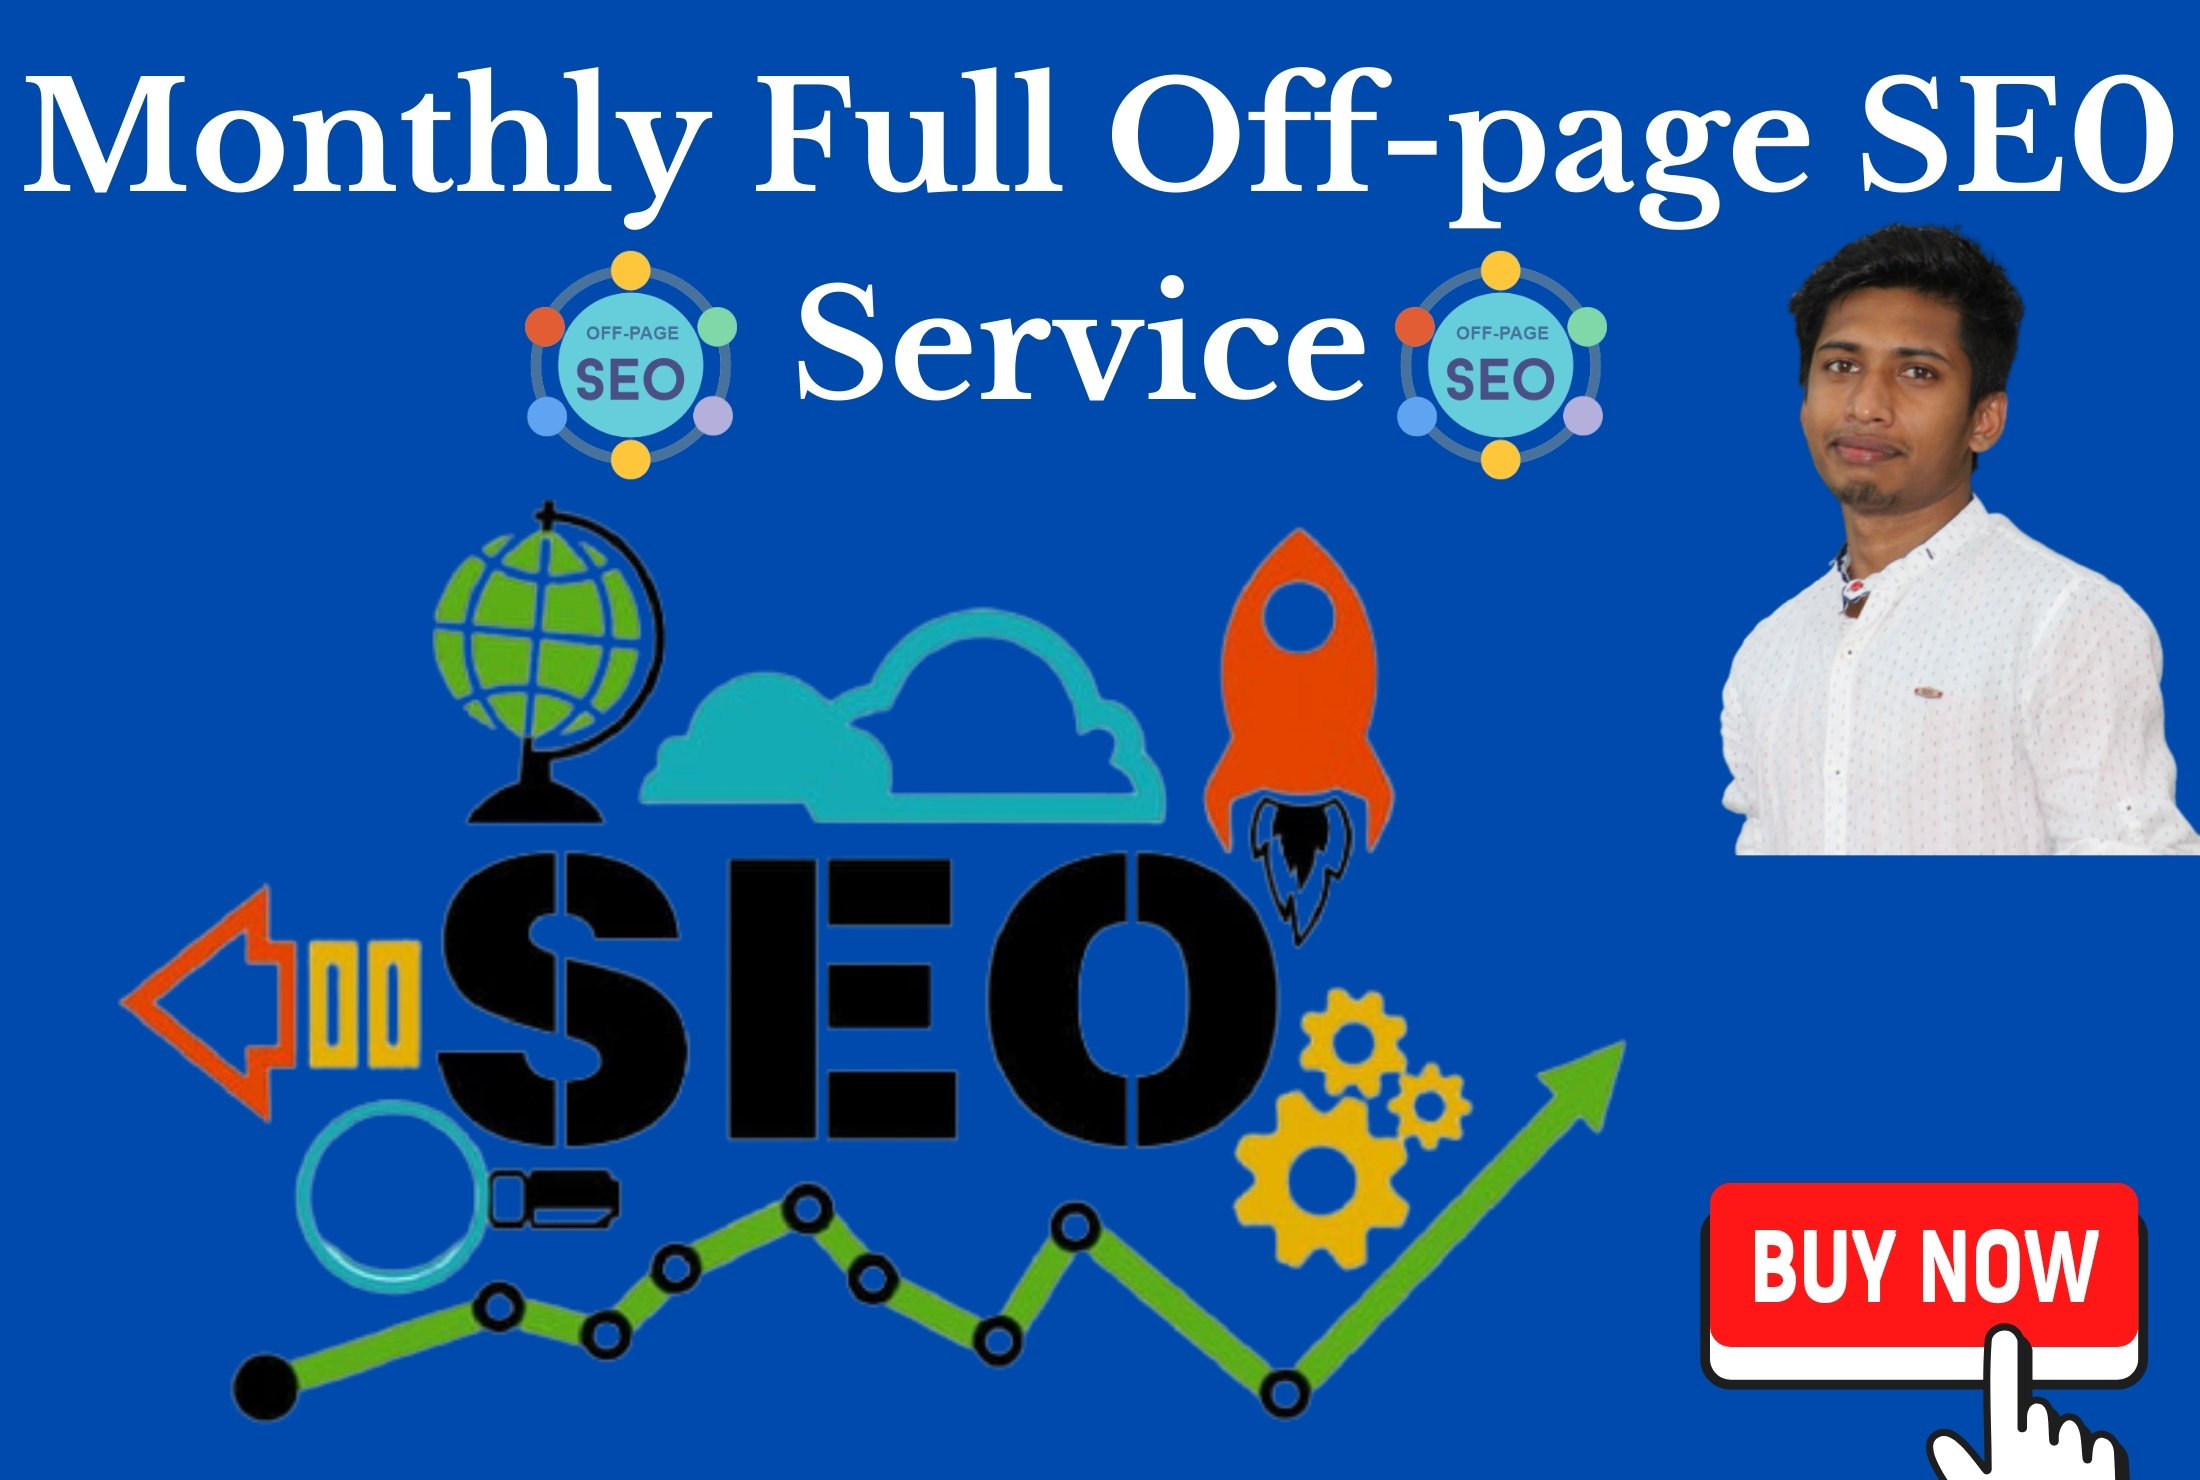 Monthly full off-page seo service with 1200 tier1 & tier2 backlink for your website